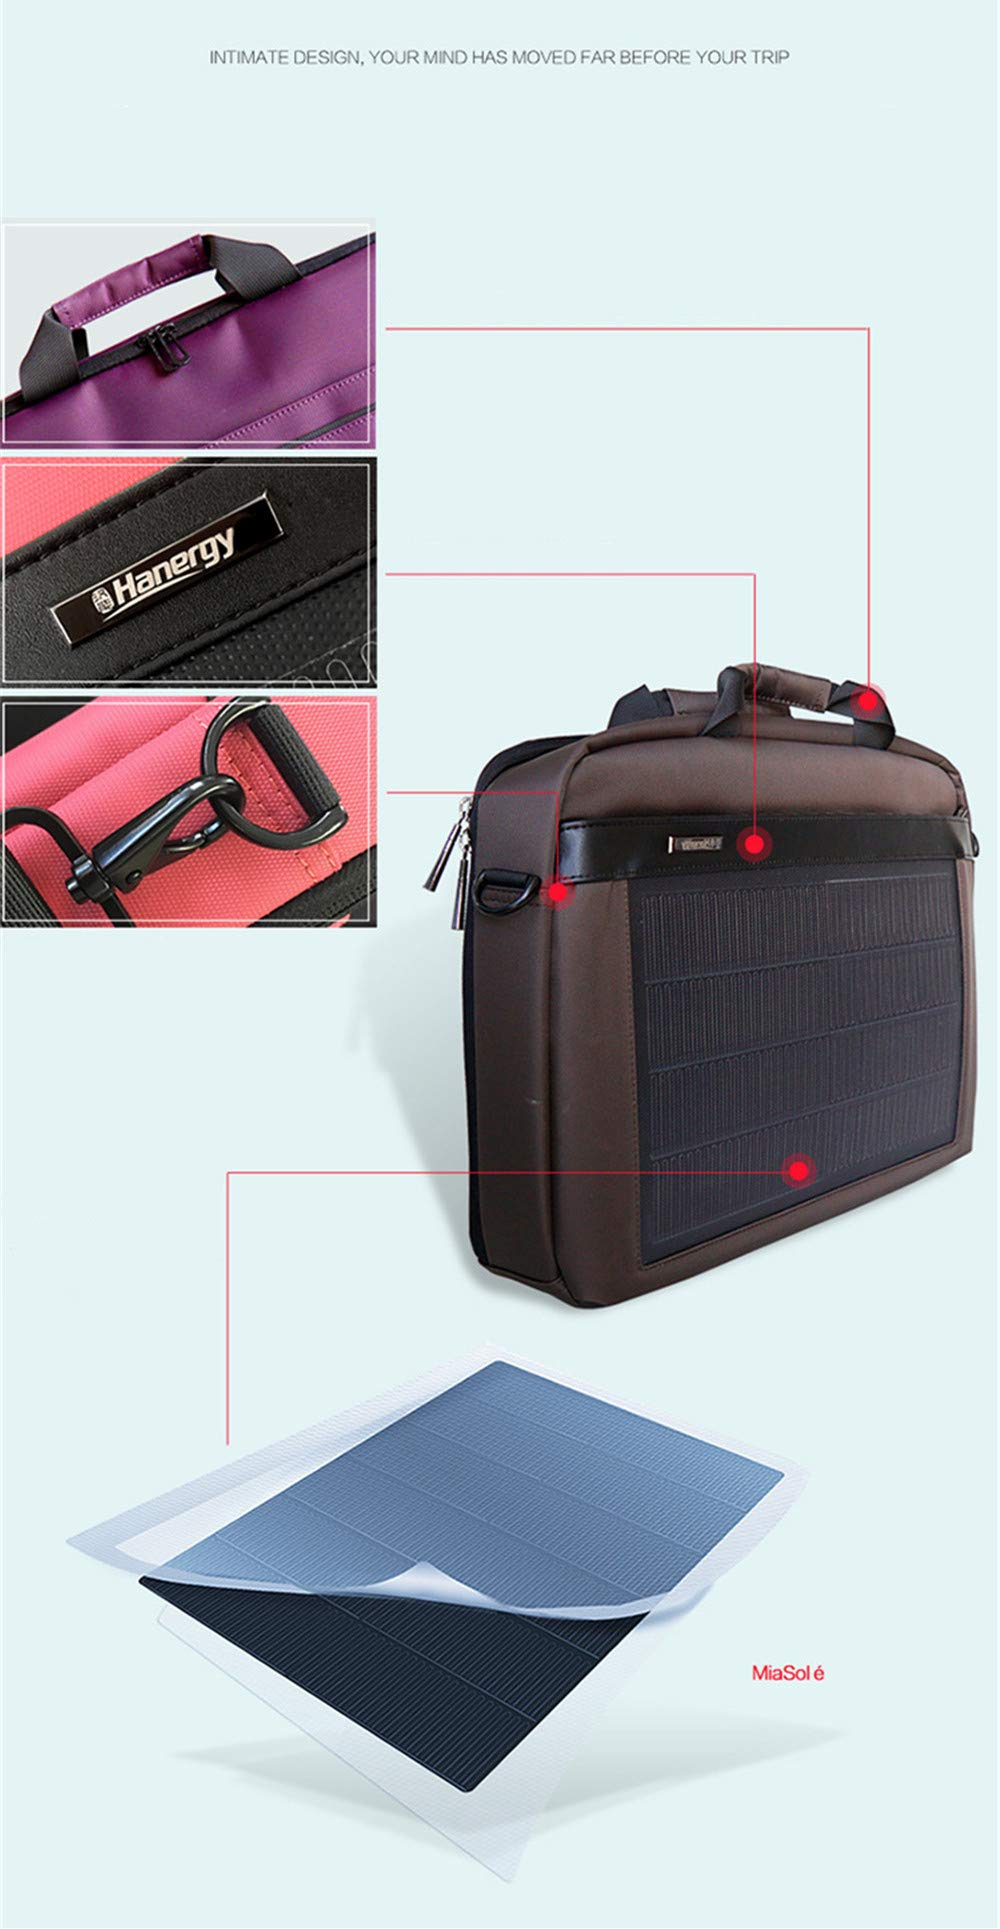 HANERGY Thin Film Solar Powered 8W Laptop Computer Case Electronics Business Shoulder Bag Notebook MacBook iPad Protective Case with Handle & Accessory Pocket (Black) by HANERGY (Image #1)